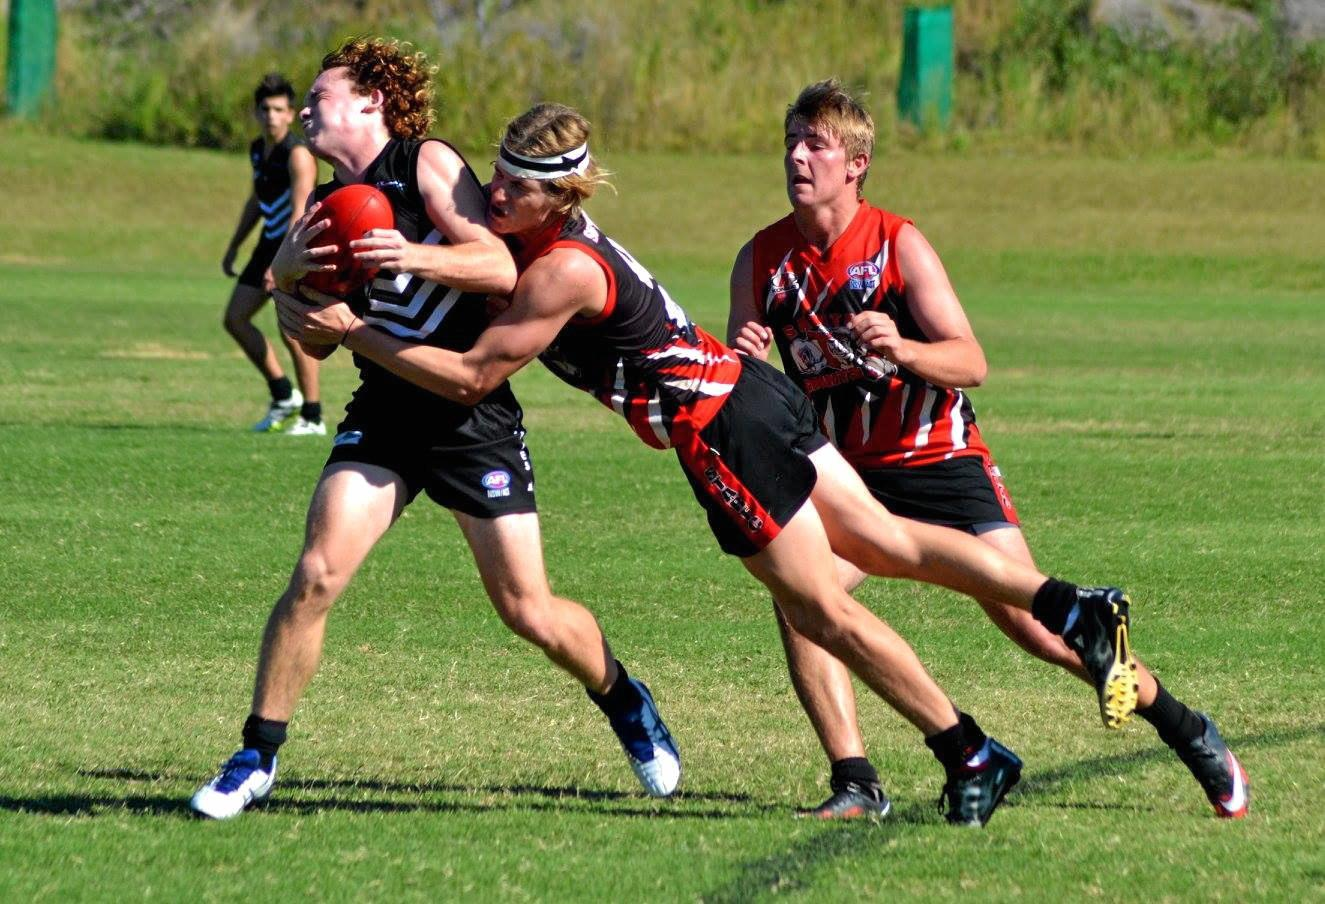 AFL match between Port Macquarie Magpies and Sawtell-Toormina Saints at Wayne Richards Park.